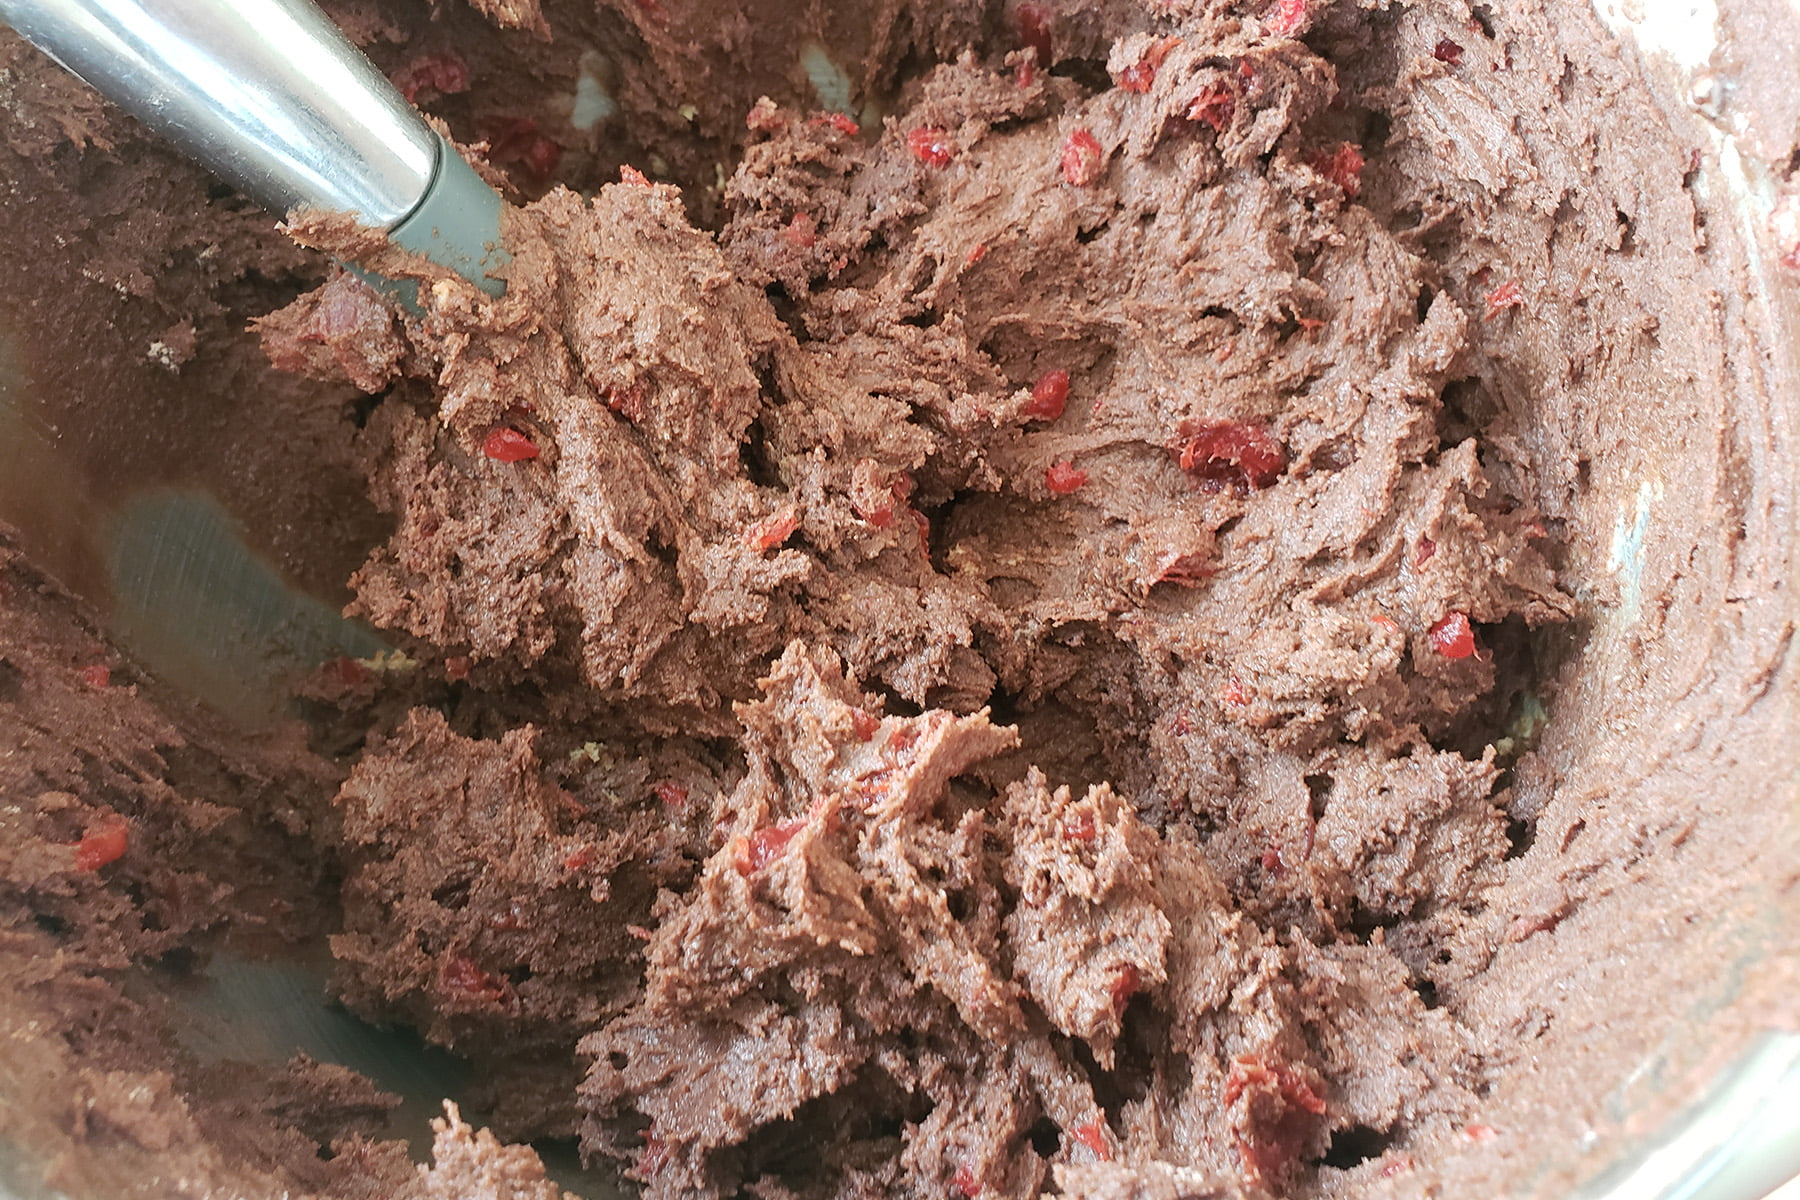 A close up view of a mixing bowl with chocolate cookie dough in it. The dough is generously studded with bits of maraschino cherries.